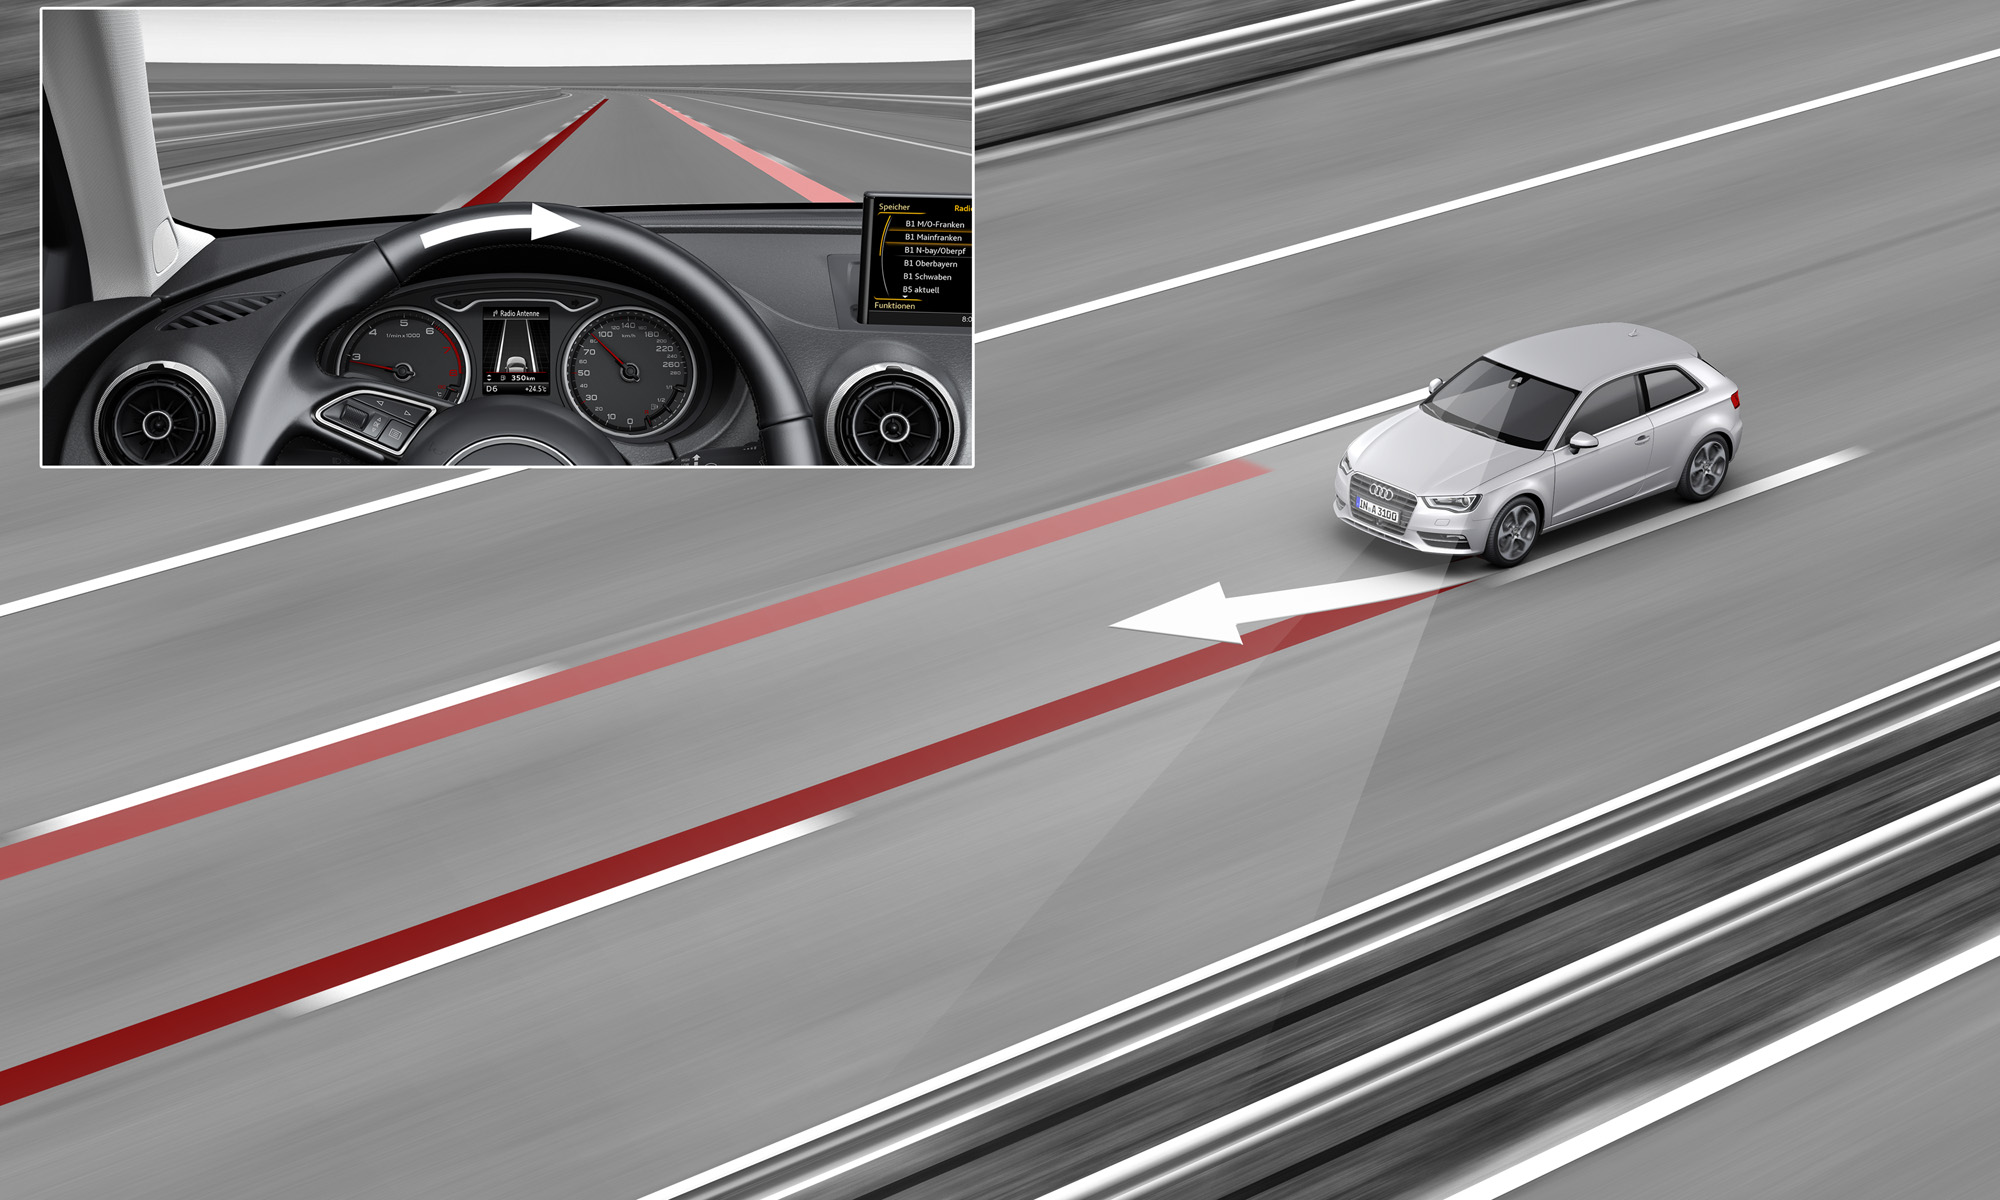 audi and skoda active lane assist system